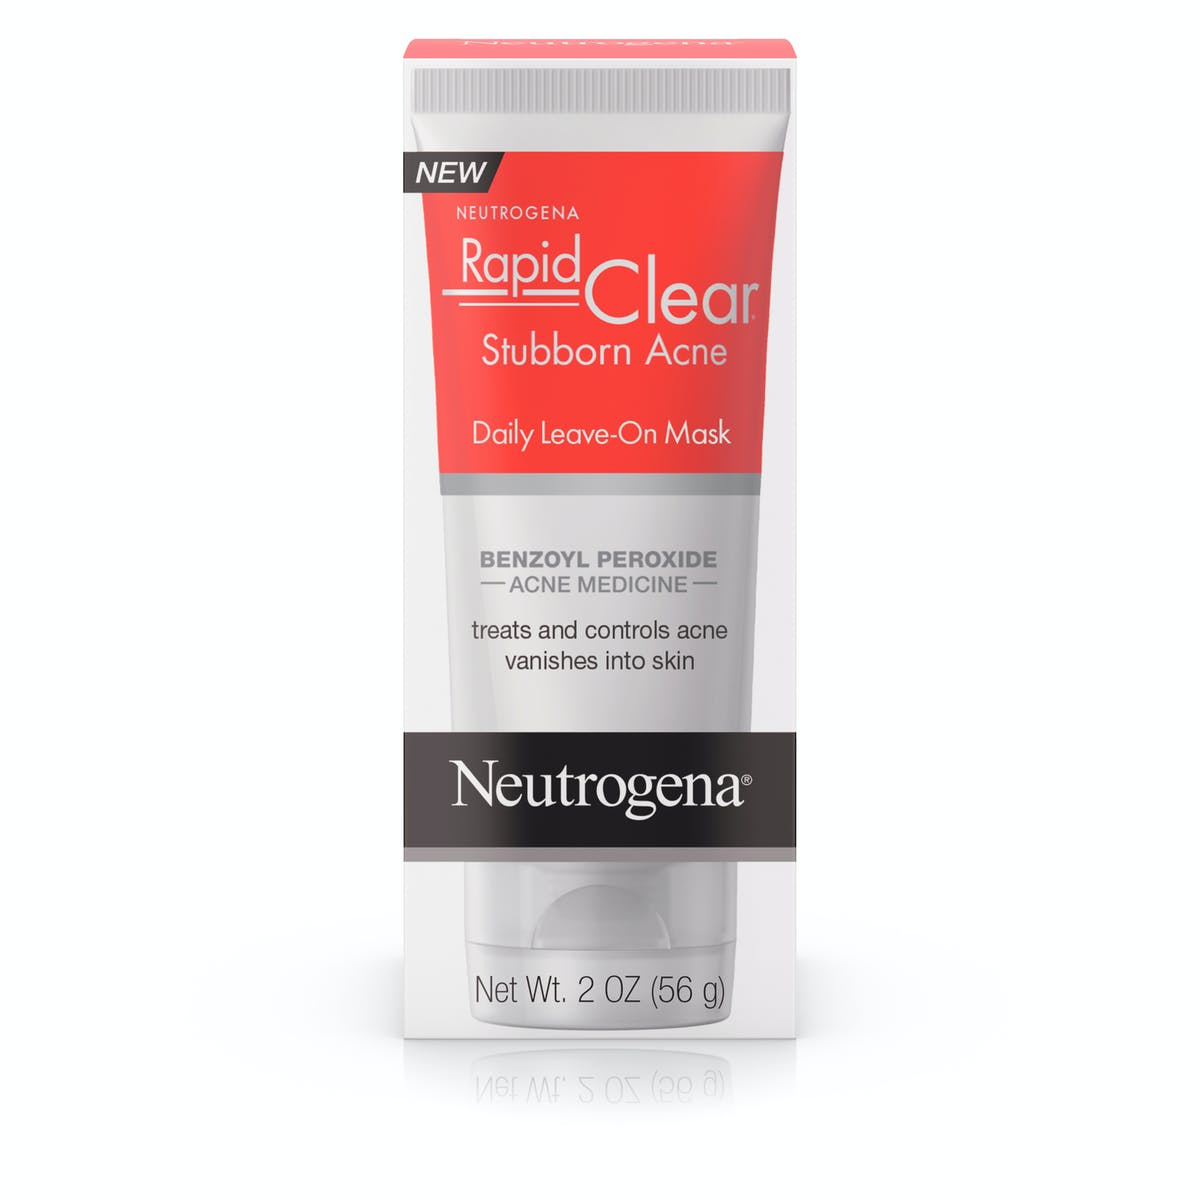 Rapid Clear Stubborn Acne Daily Leave-On Mask ...